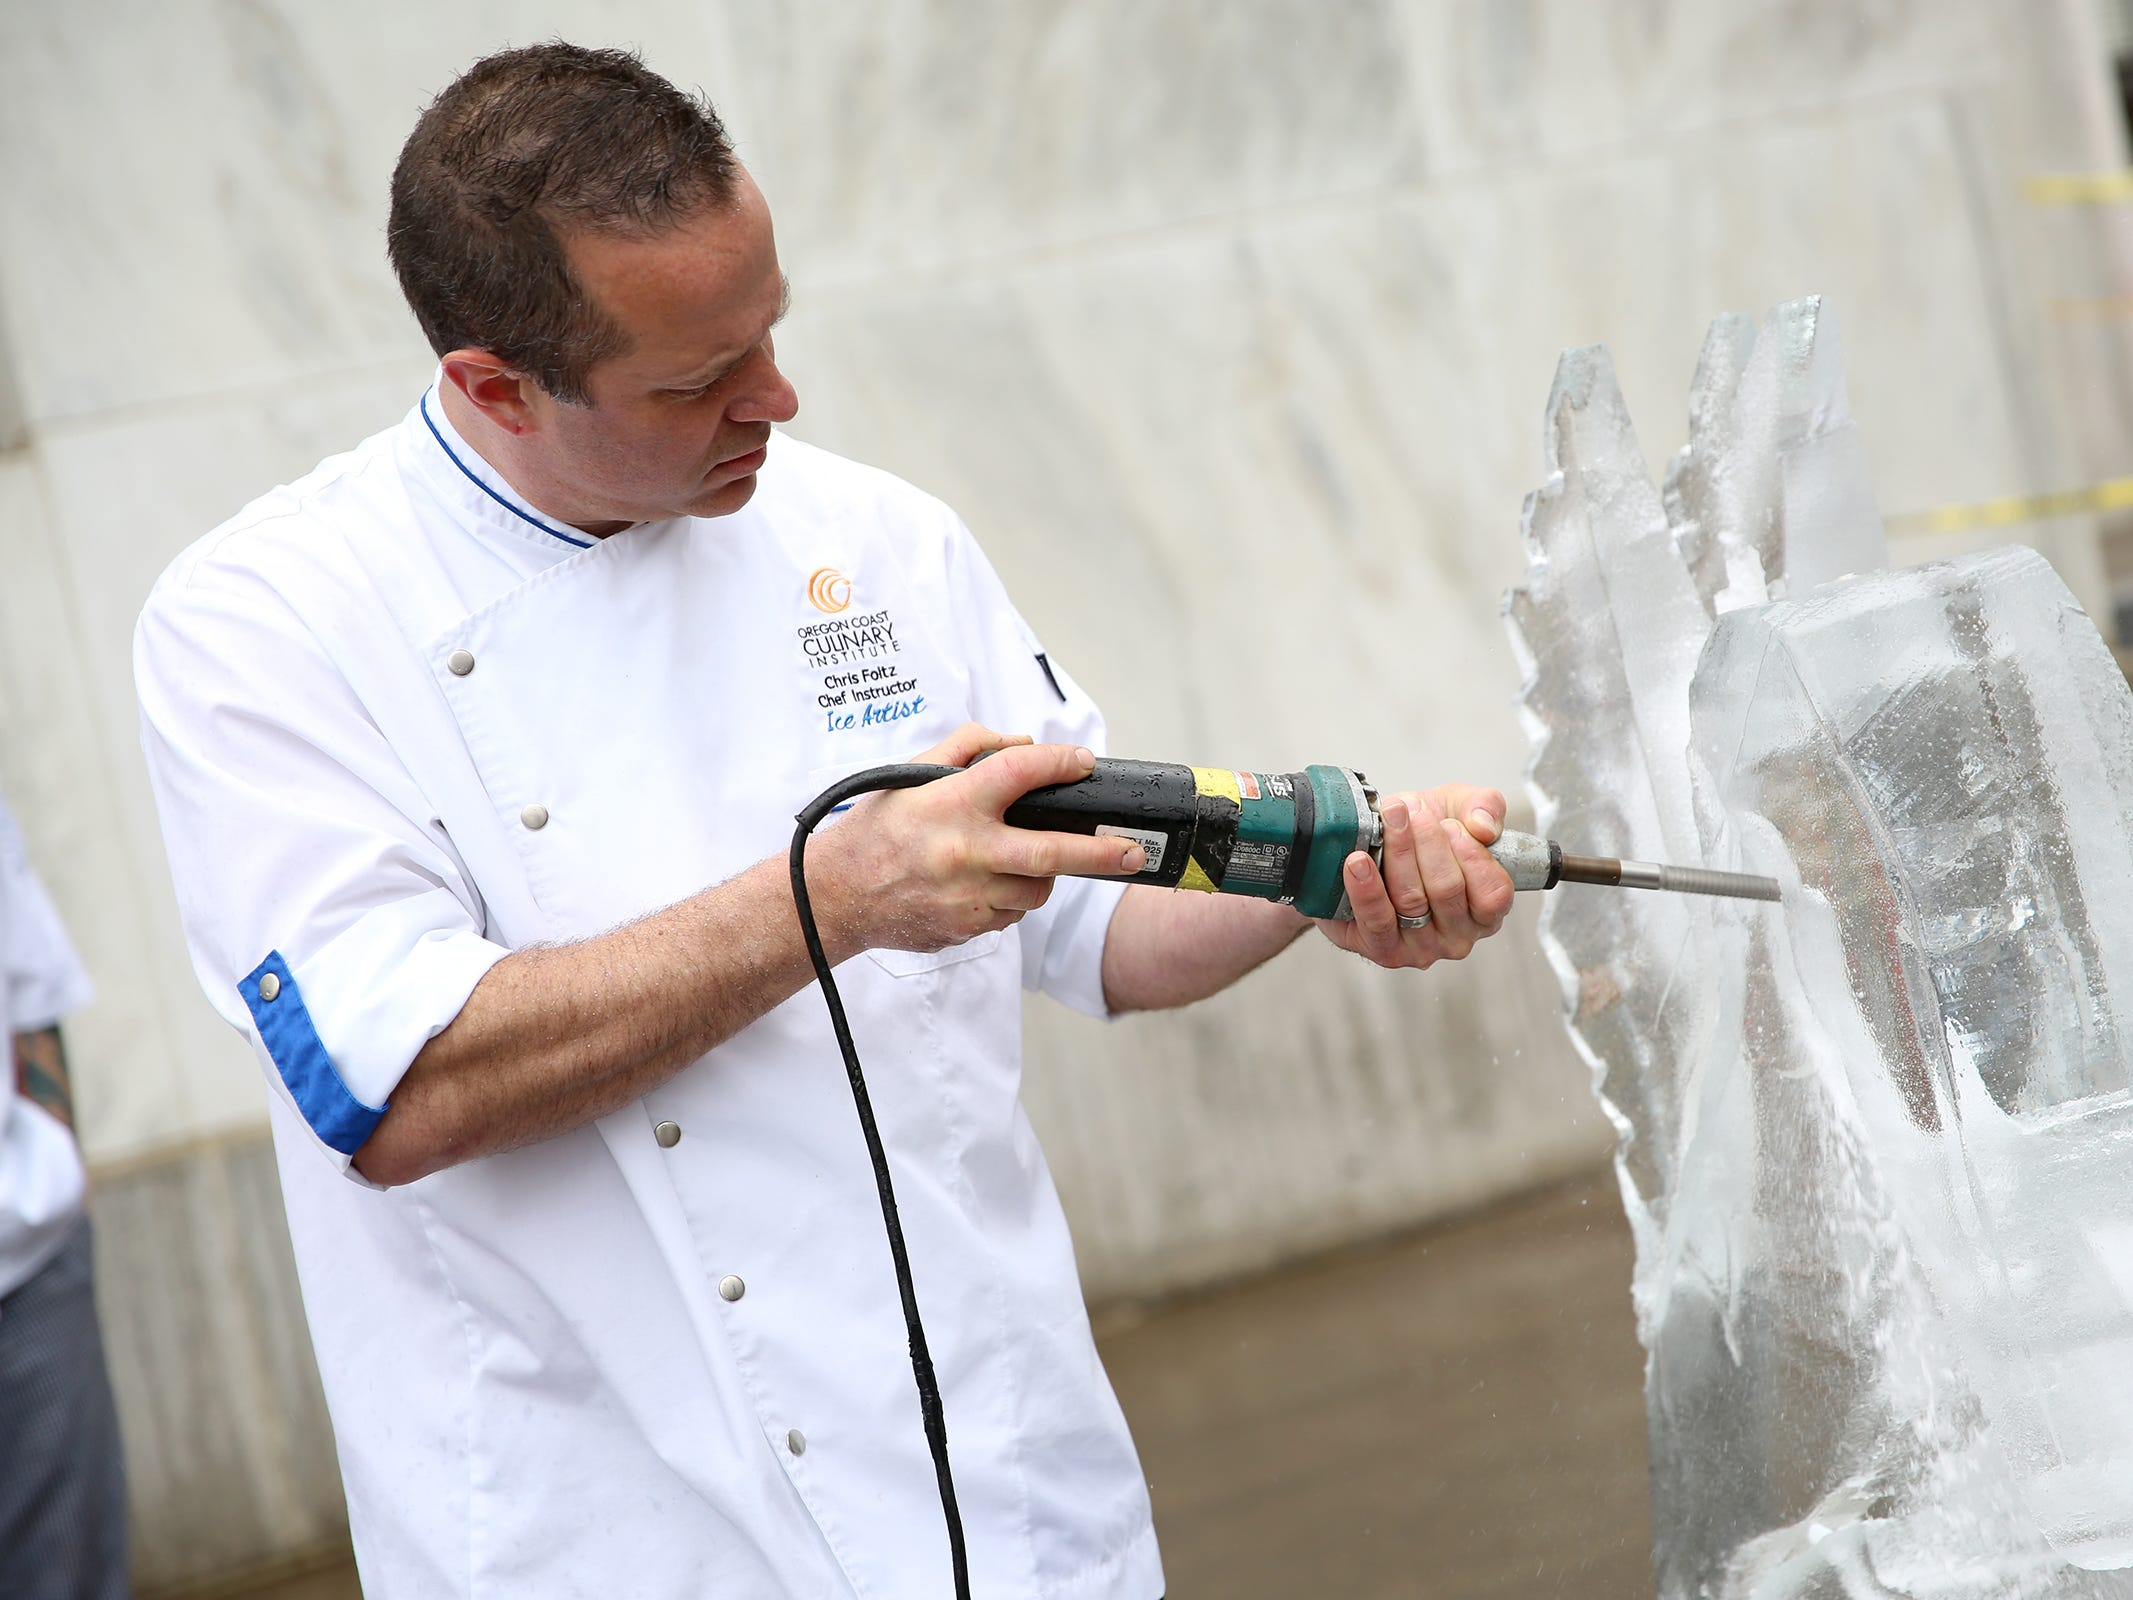 Chef Chris Foltz, an ice sculpture and instructor at Southwestern Community College's culinary program, works on a sculpture during Career and Technical Education (CTE) day at the Oregon State Capitol in Salem on Friday, Feb. 1, 2019.